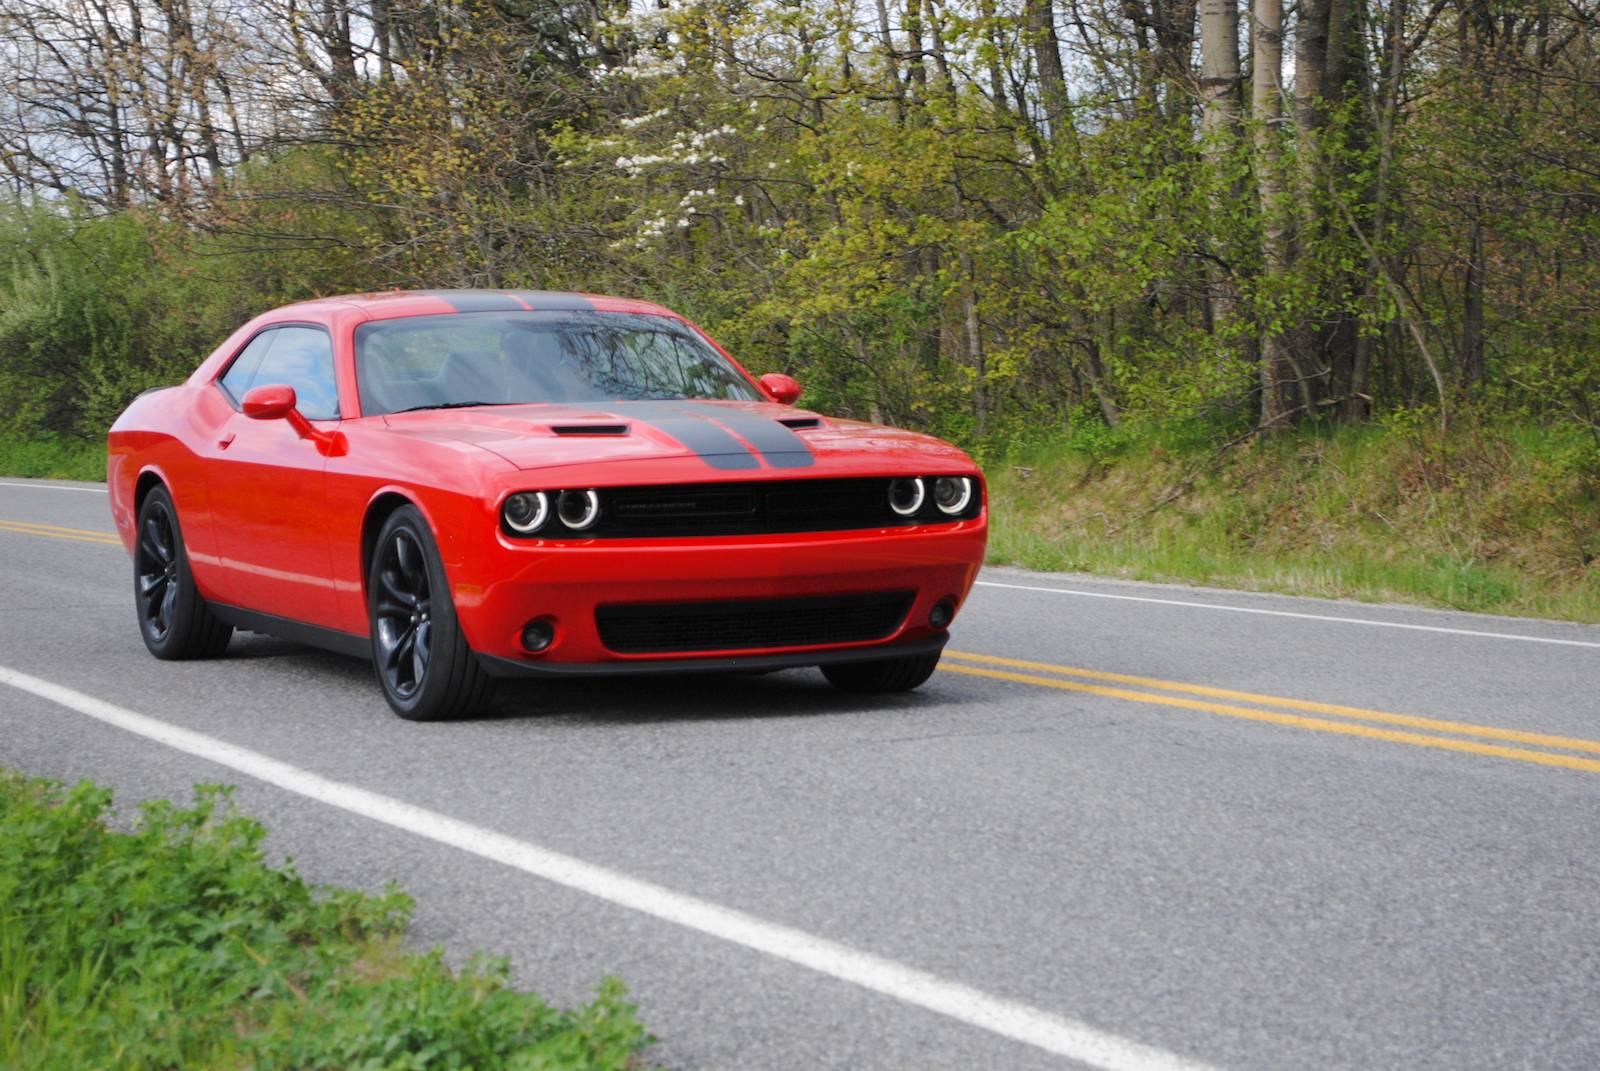 2016 Dodge Challenger Sxt Plus >> 2016 Dodge Challenger SXT Plus Review - GTspirit